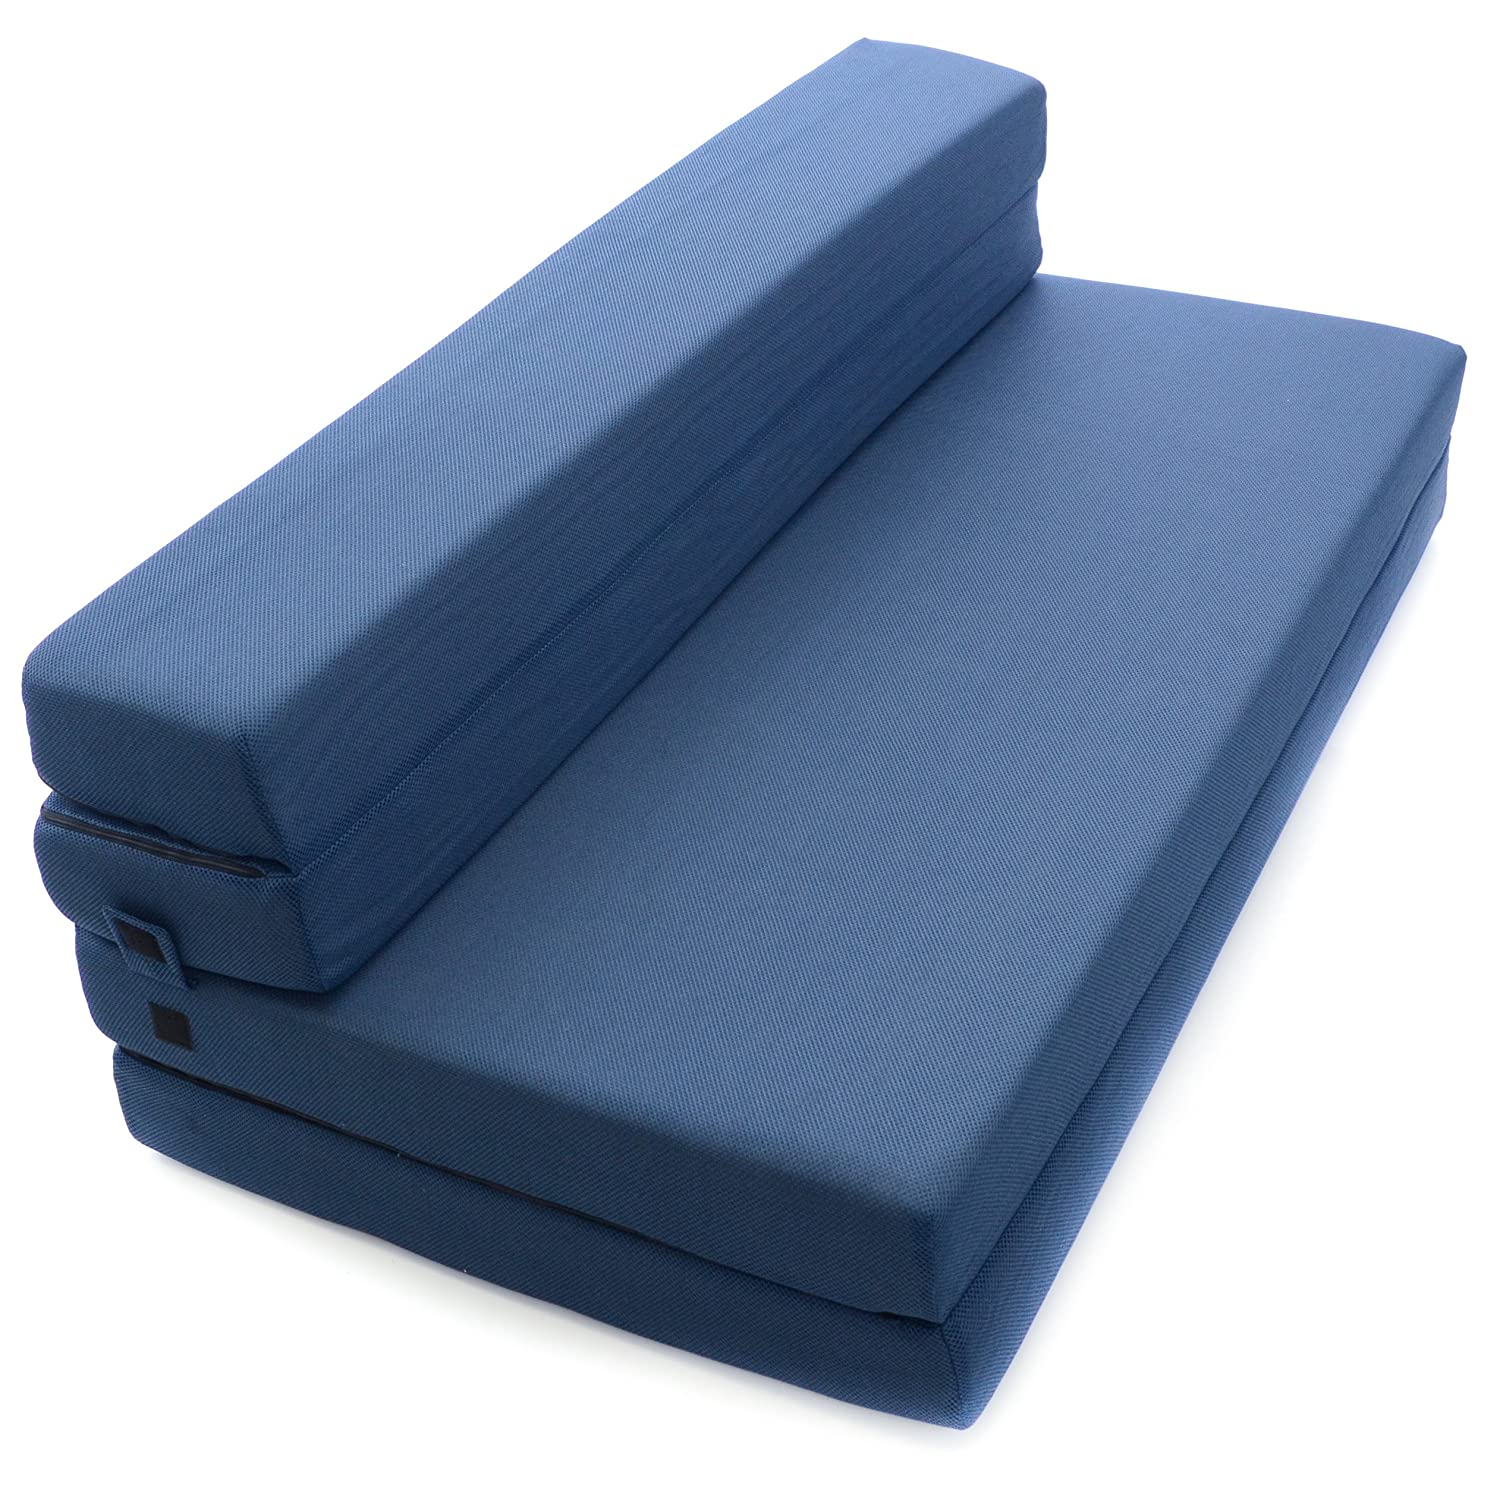 folding foam mattress. Amazon.com: Milliard Tri-Fold Foam Folding Mattress And Sofa Bed For Guests  - Queen 78x58x4 Inches: Kitchen \u0026 Dining Folding Foam Mattress U